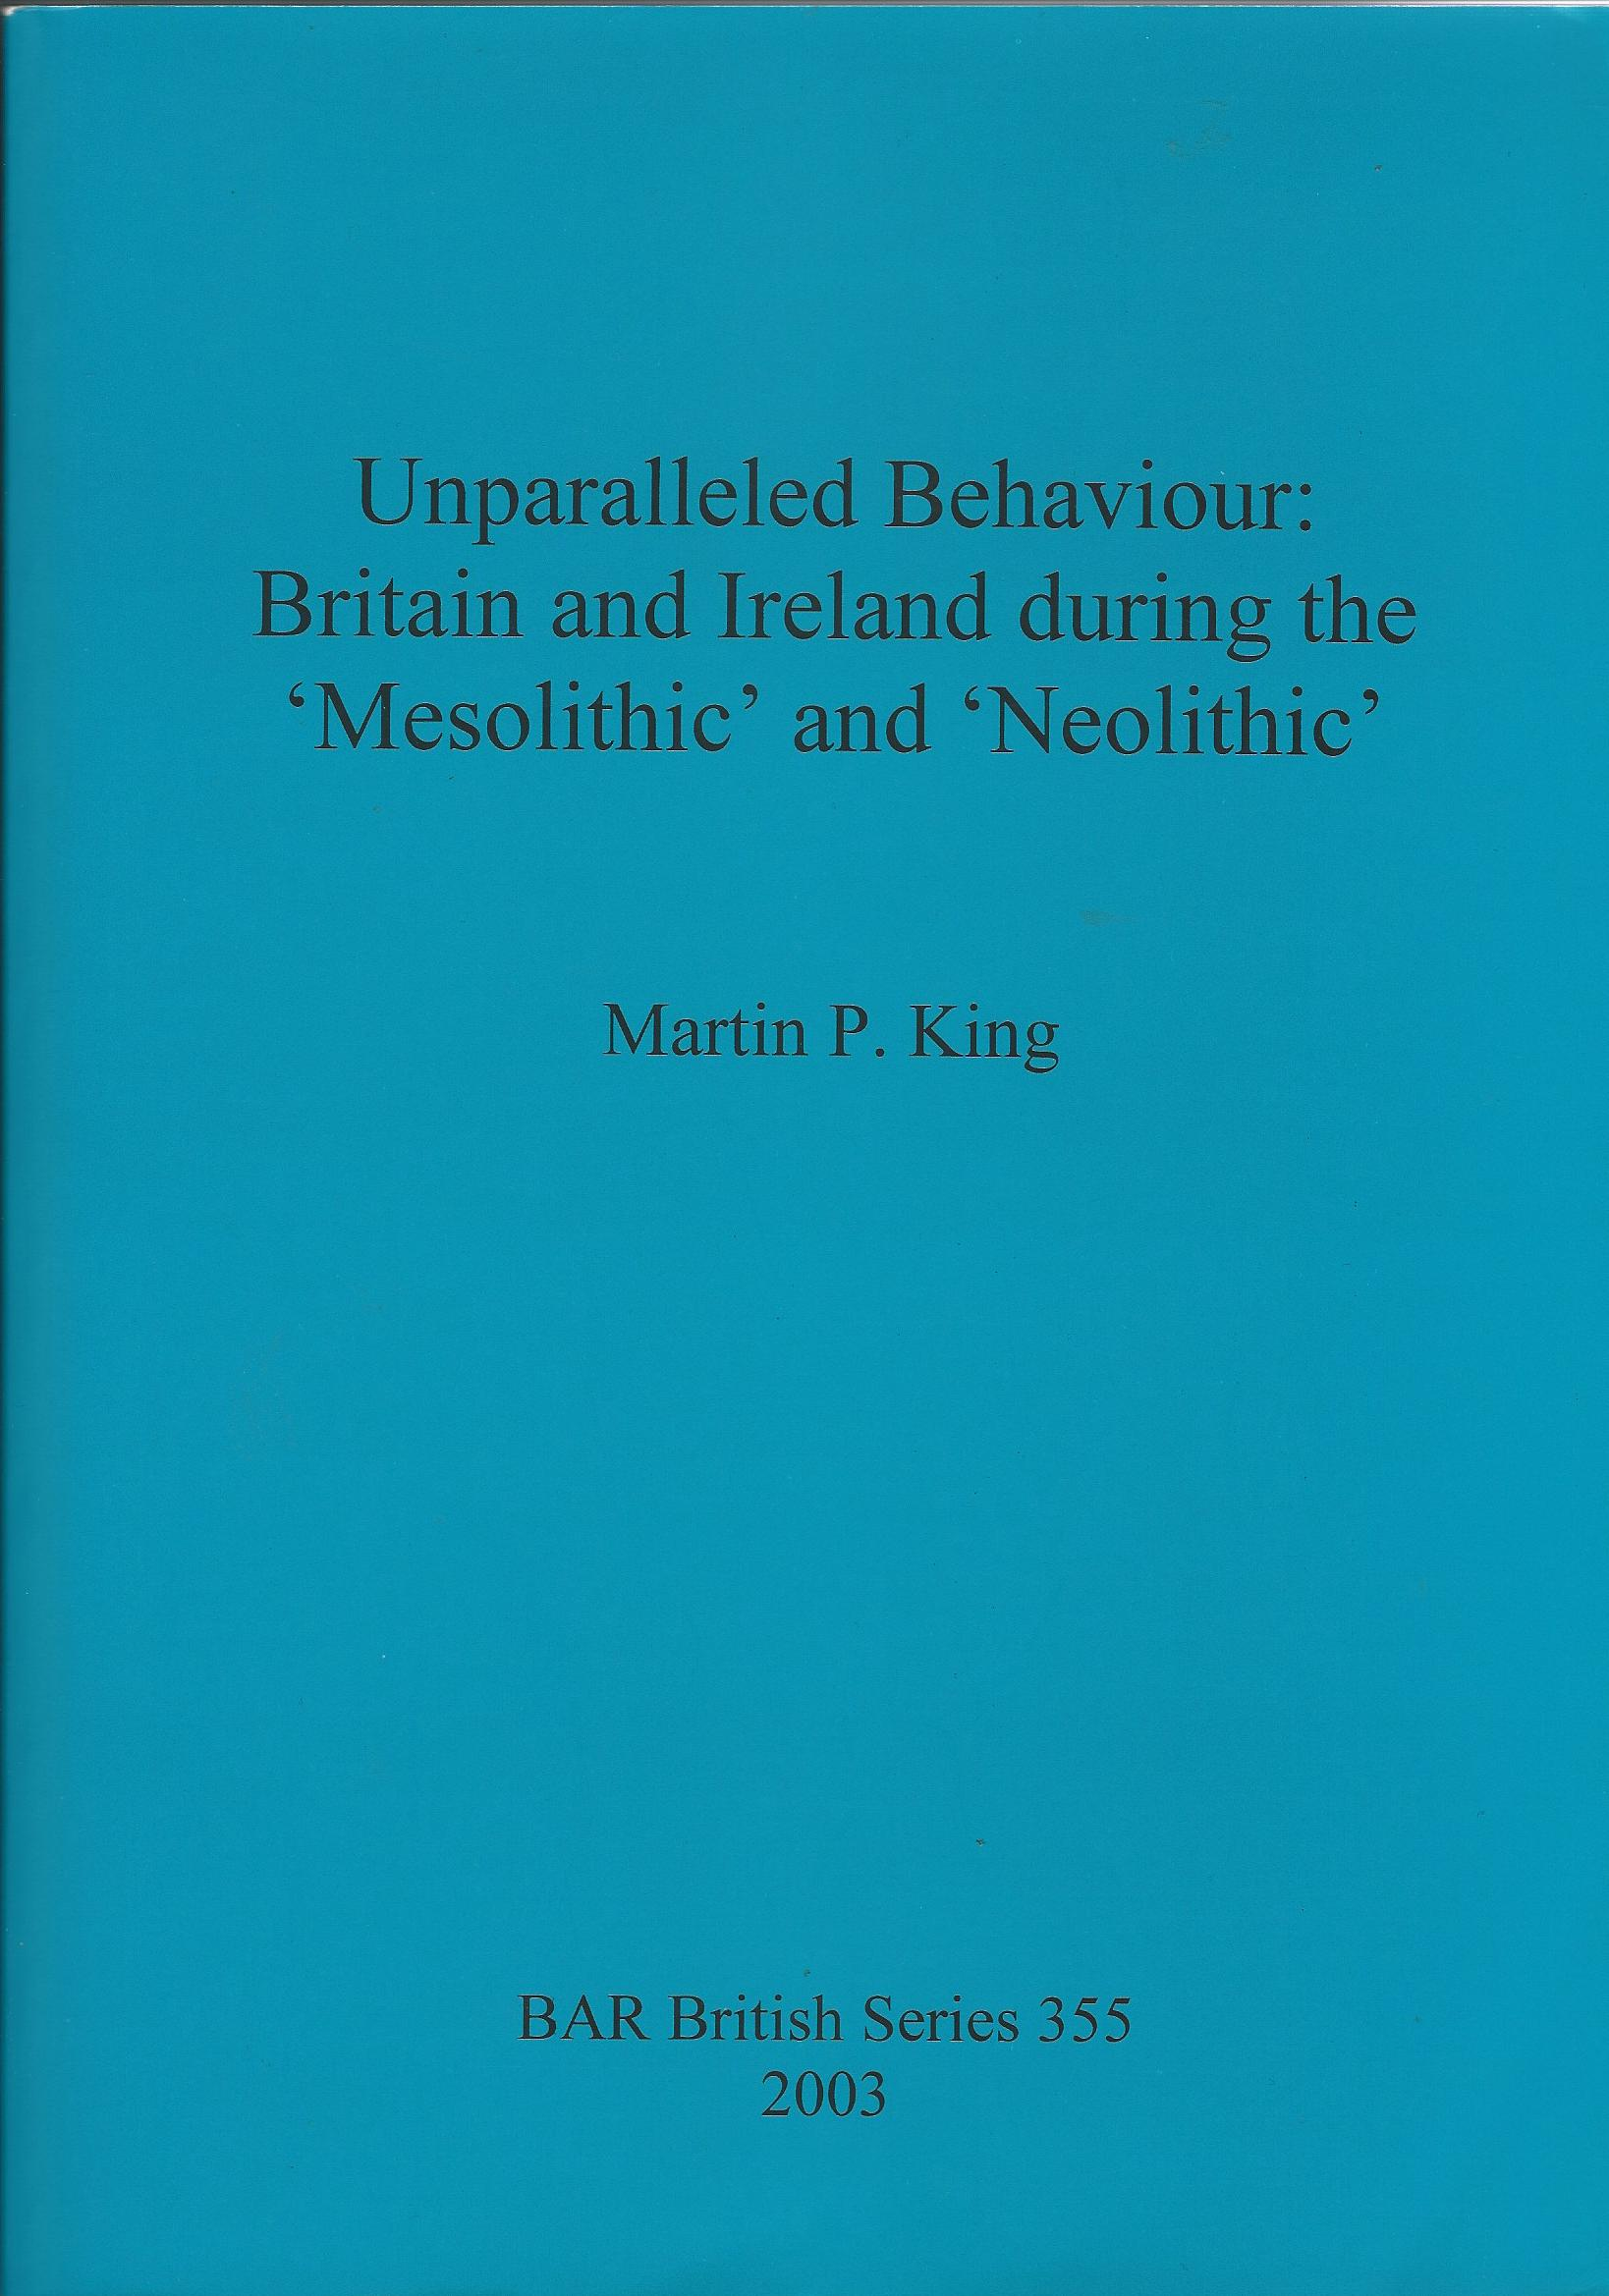 Image for Unparalleled Behaviour: Britain and Ireland during the 'Mesolithic' and 'Neolithic' (BAR British Series)